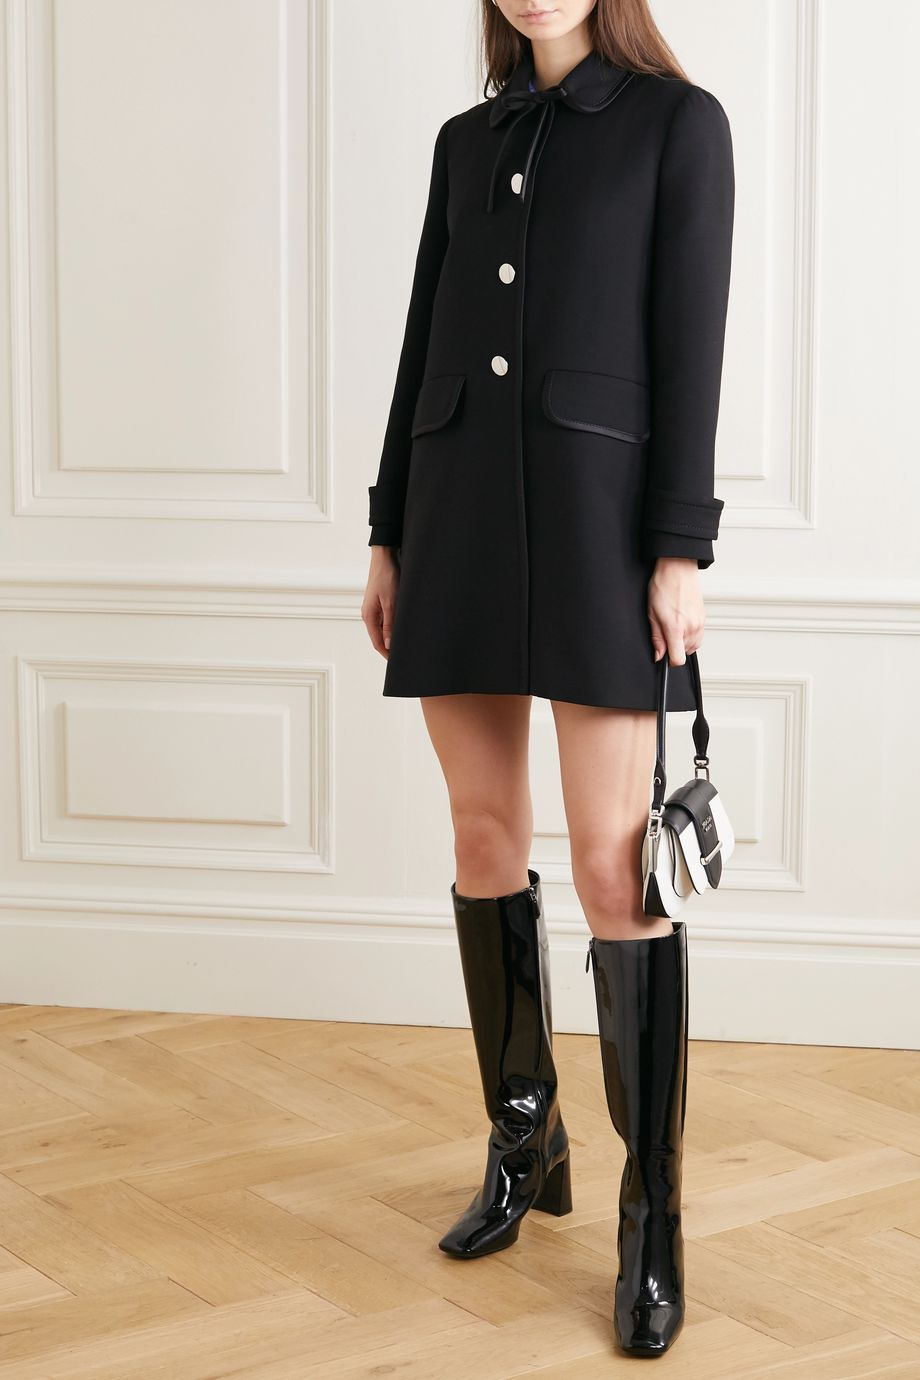 Prada Bow-detailed satin-trimmed wool coat